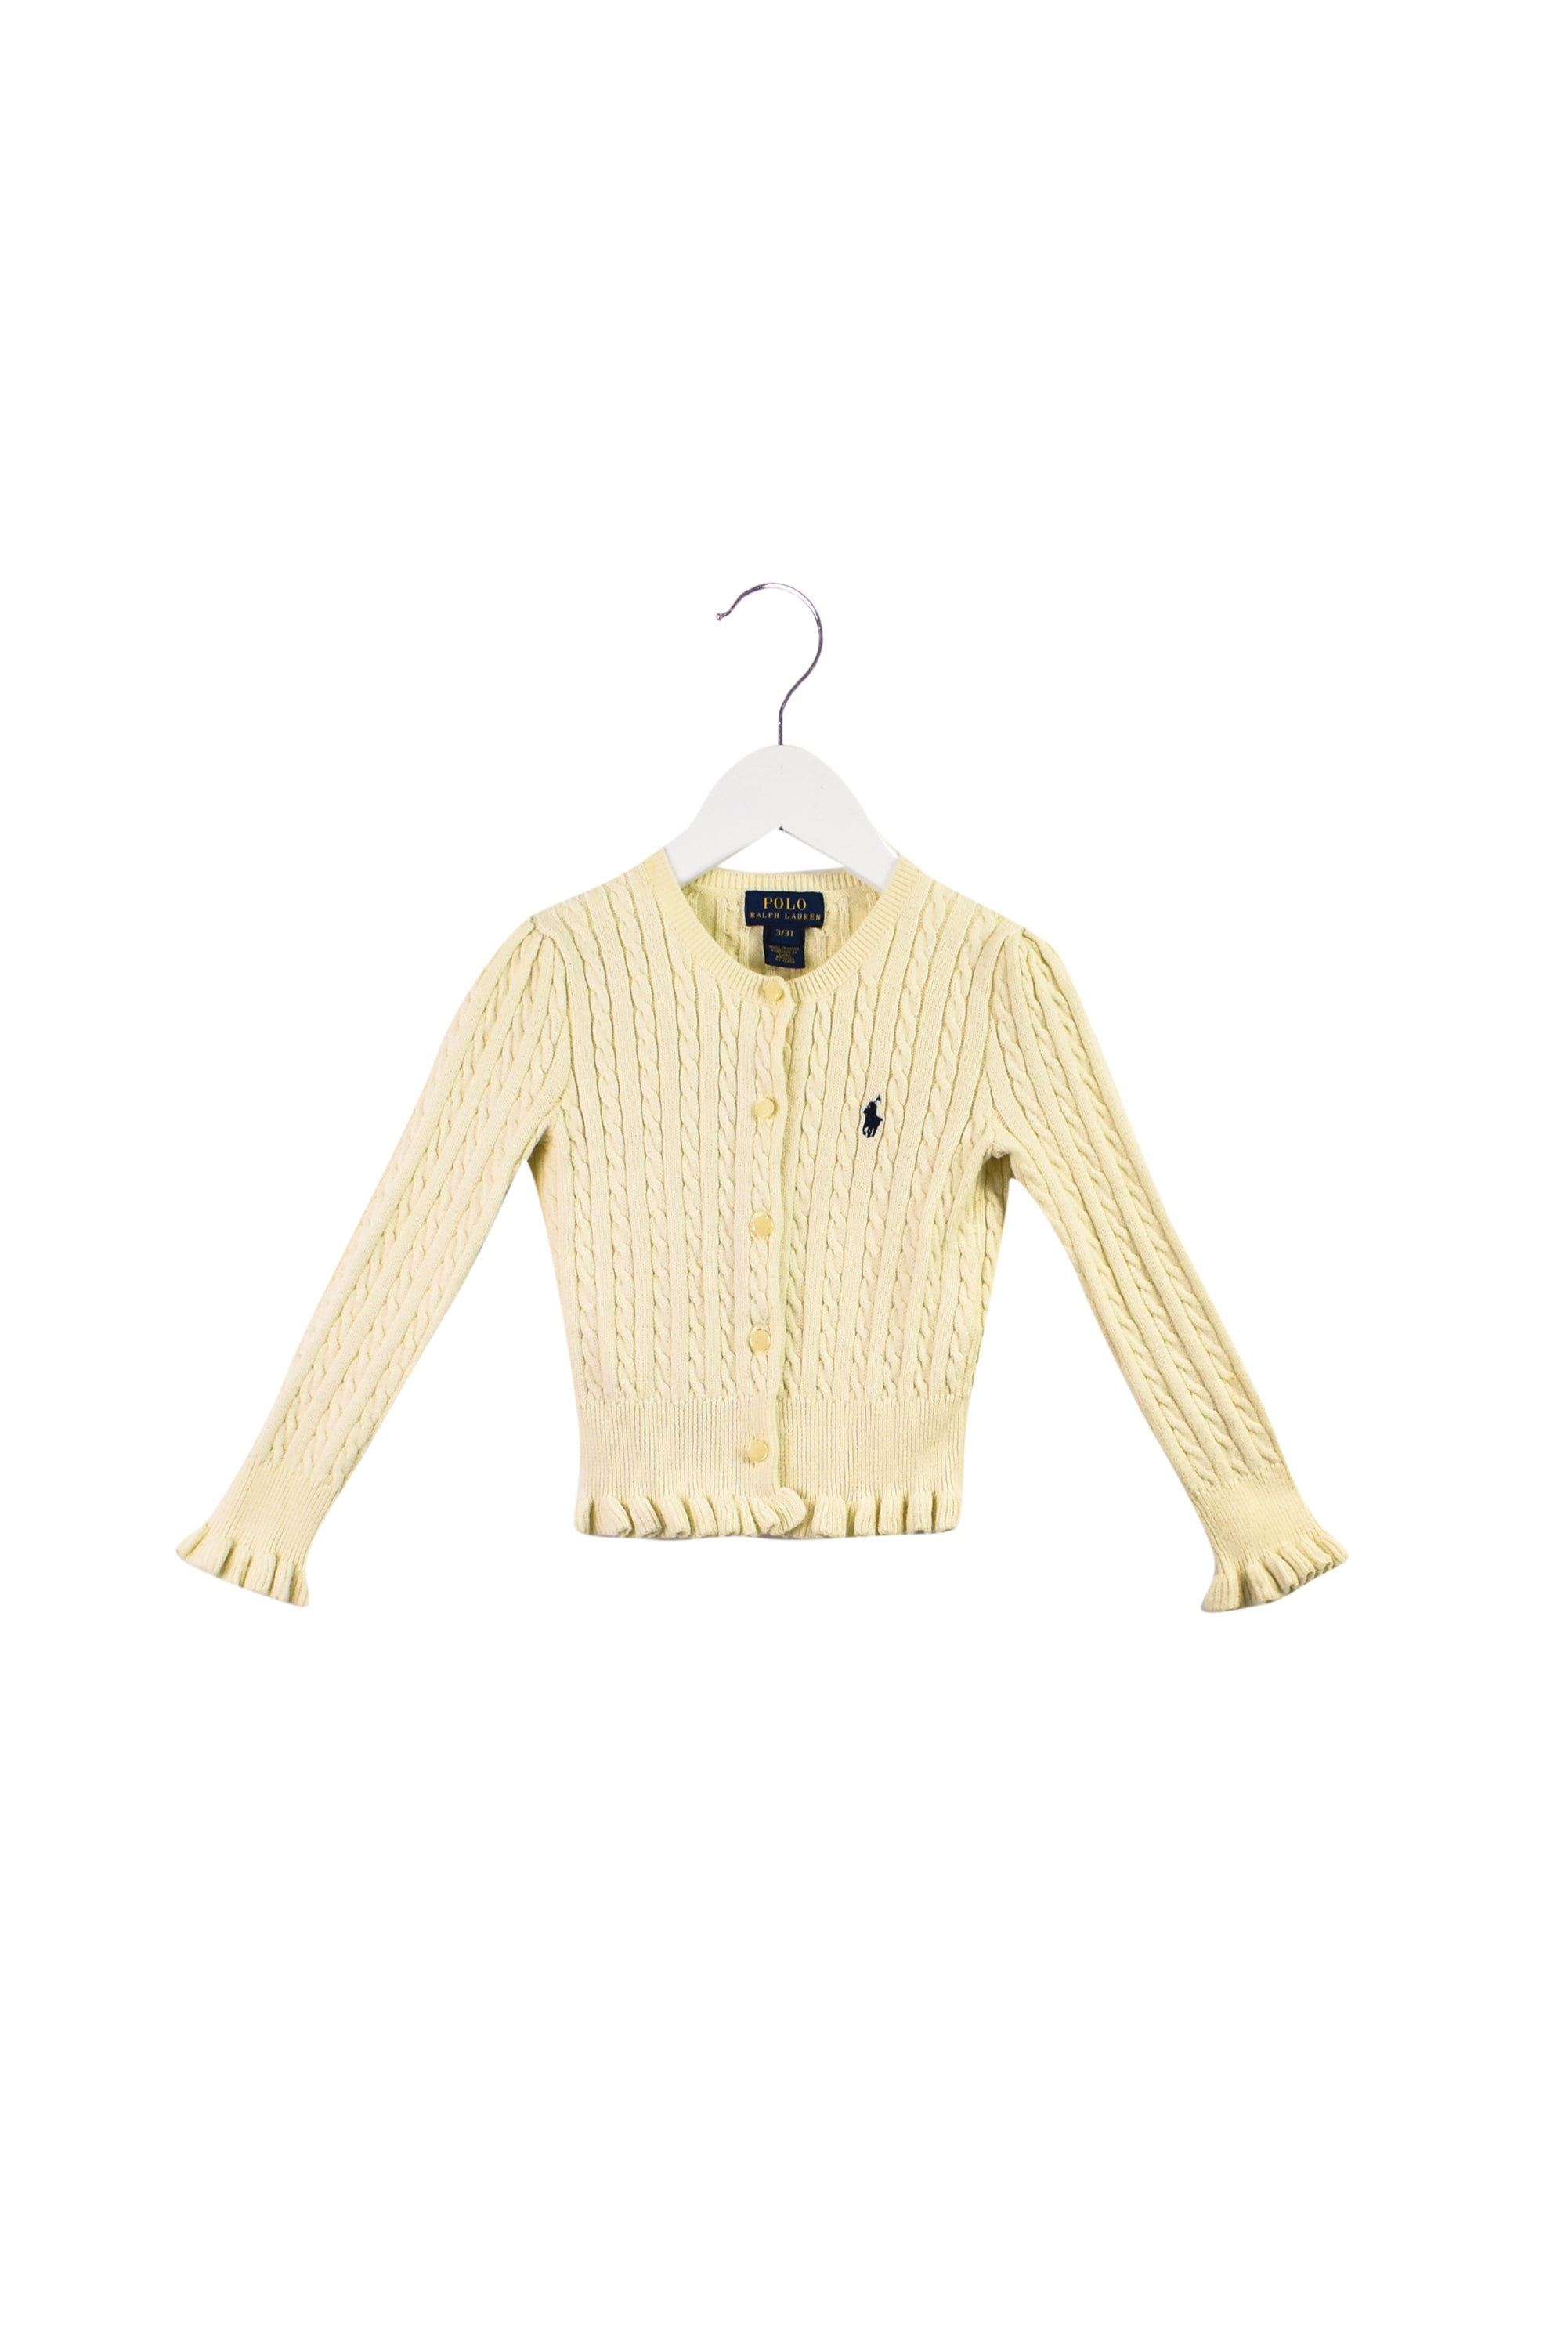 10031167 Polo Ralph Lauren Kids~Cardigan 3T at Retykle